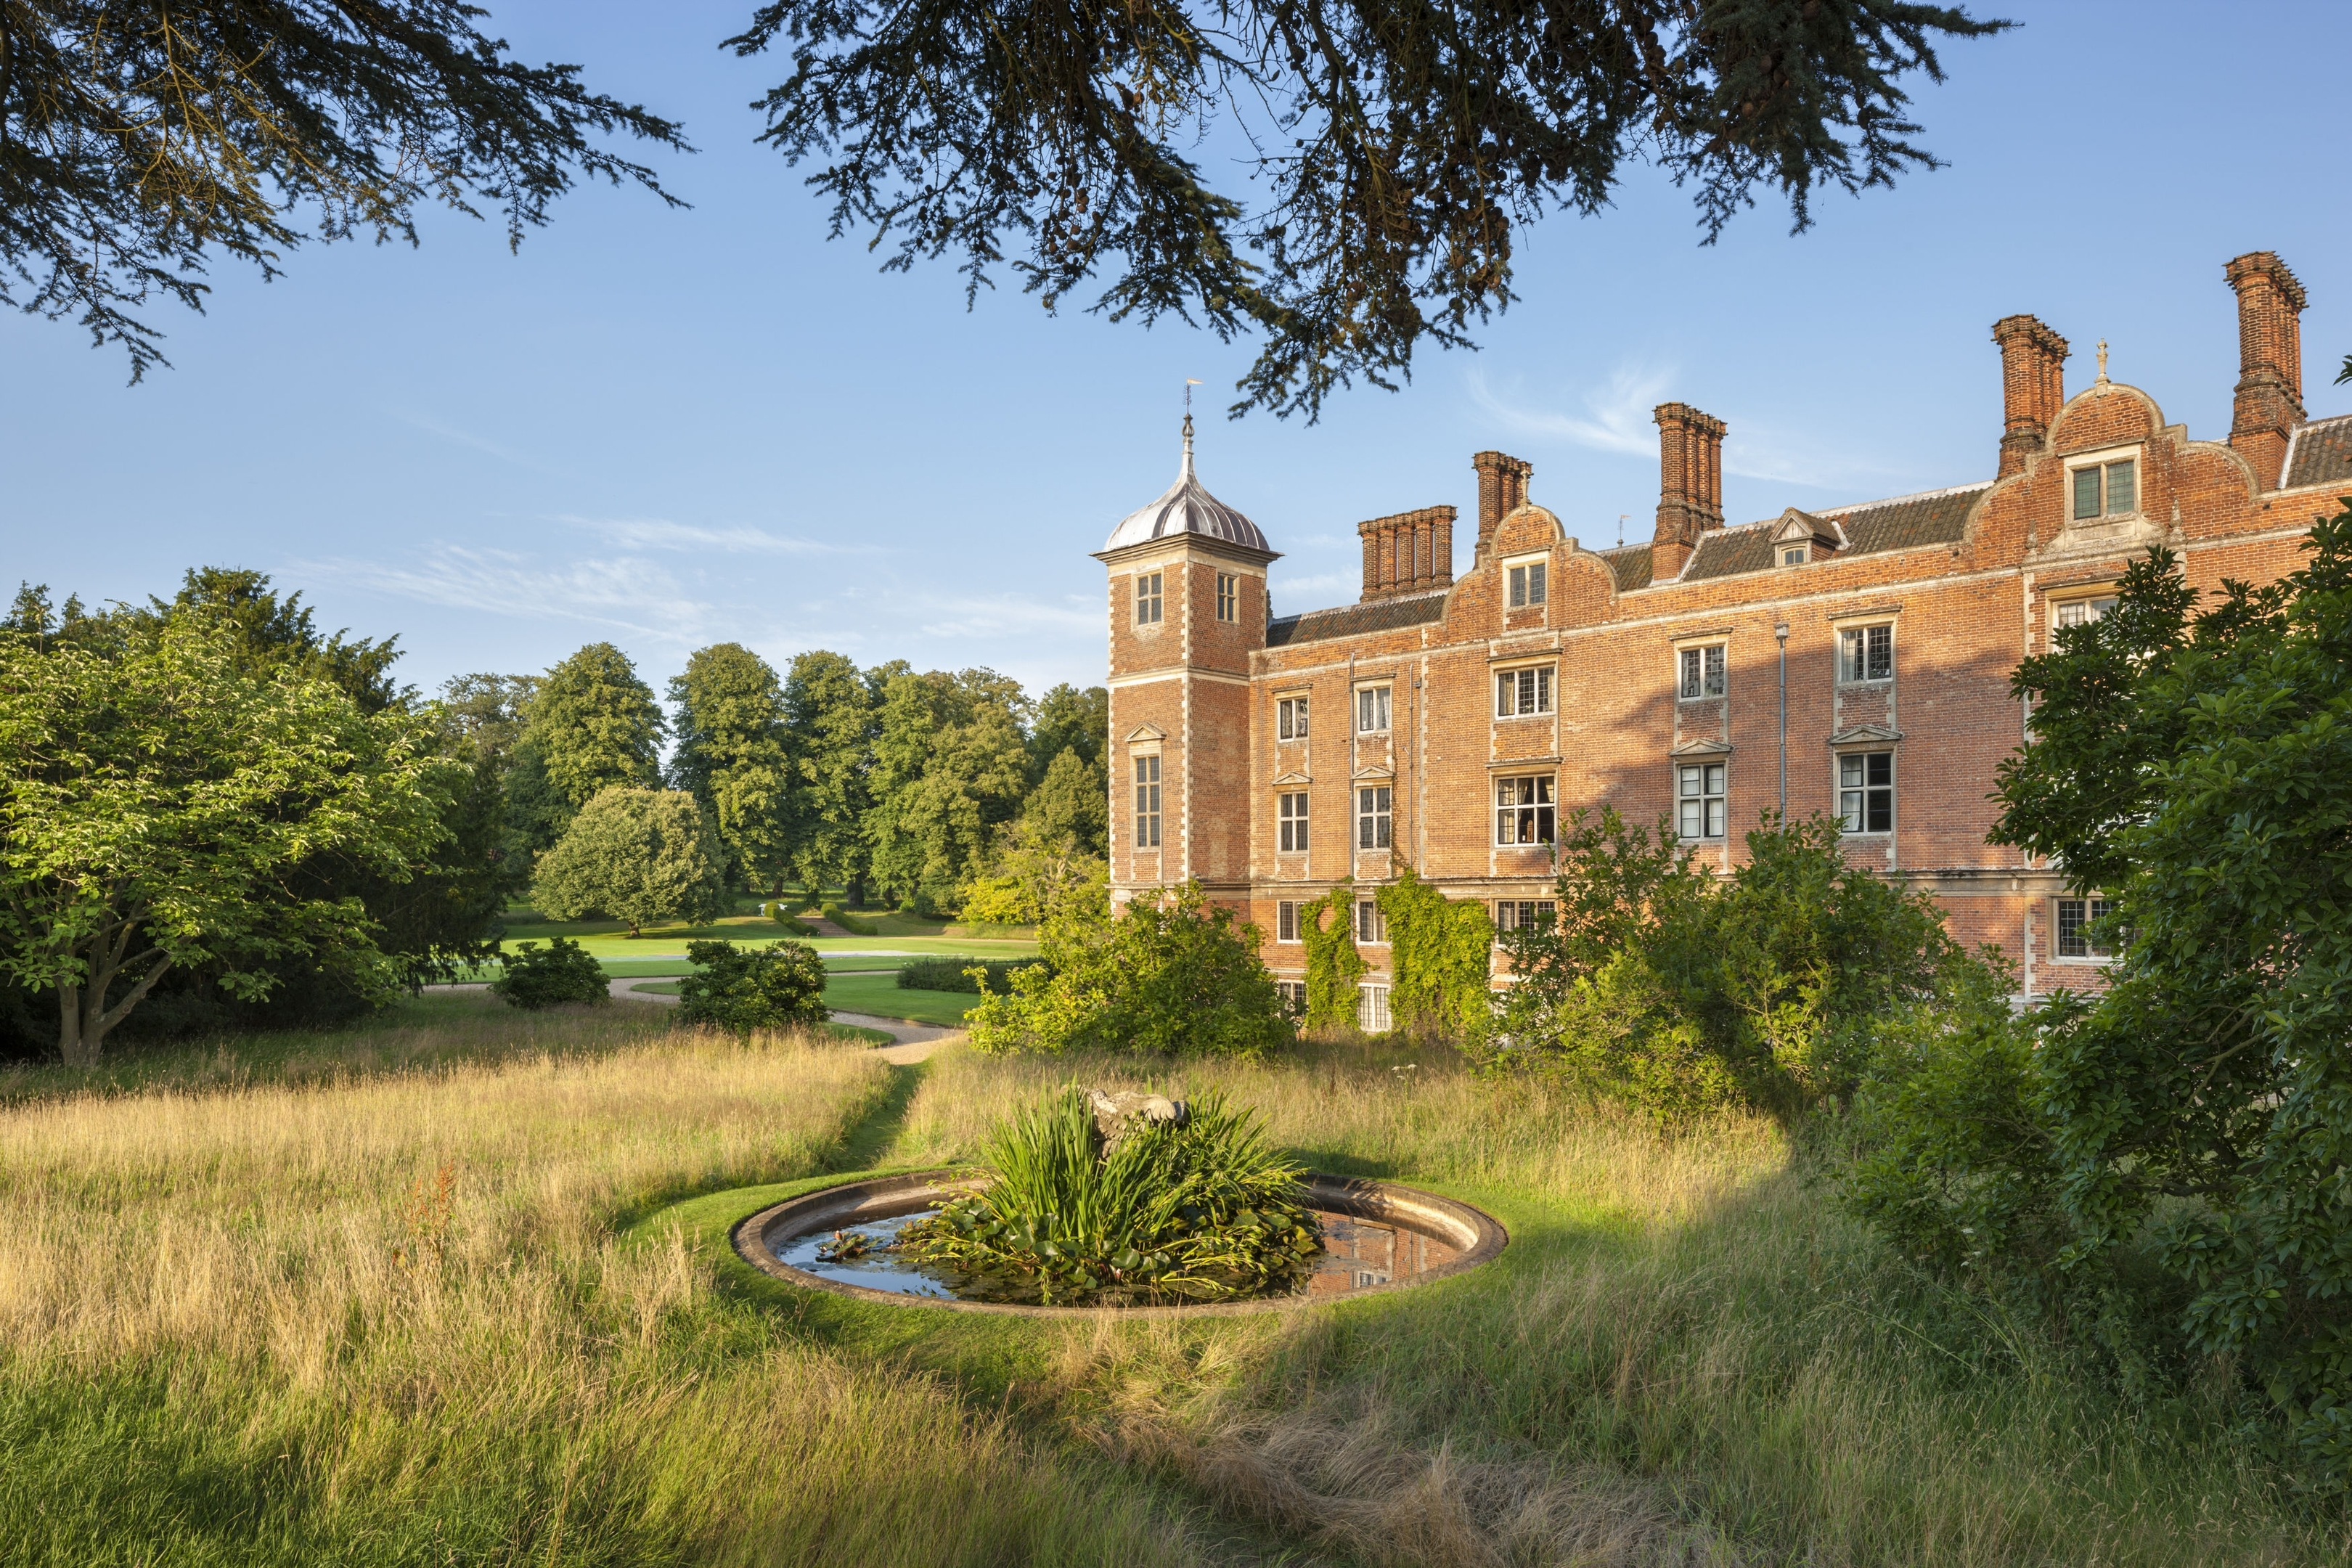 National Trust to invest £30million in renewable energy